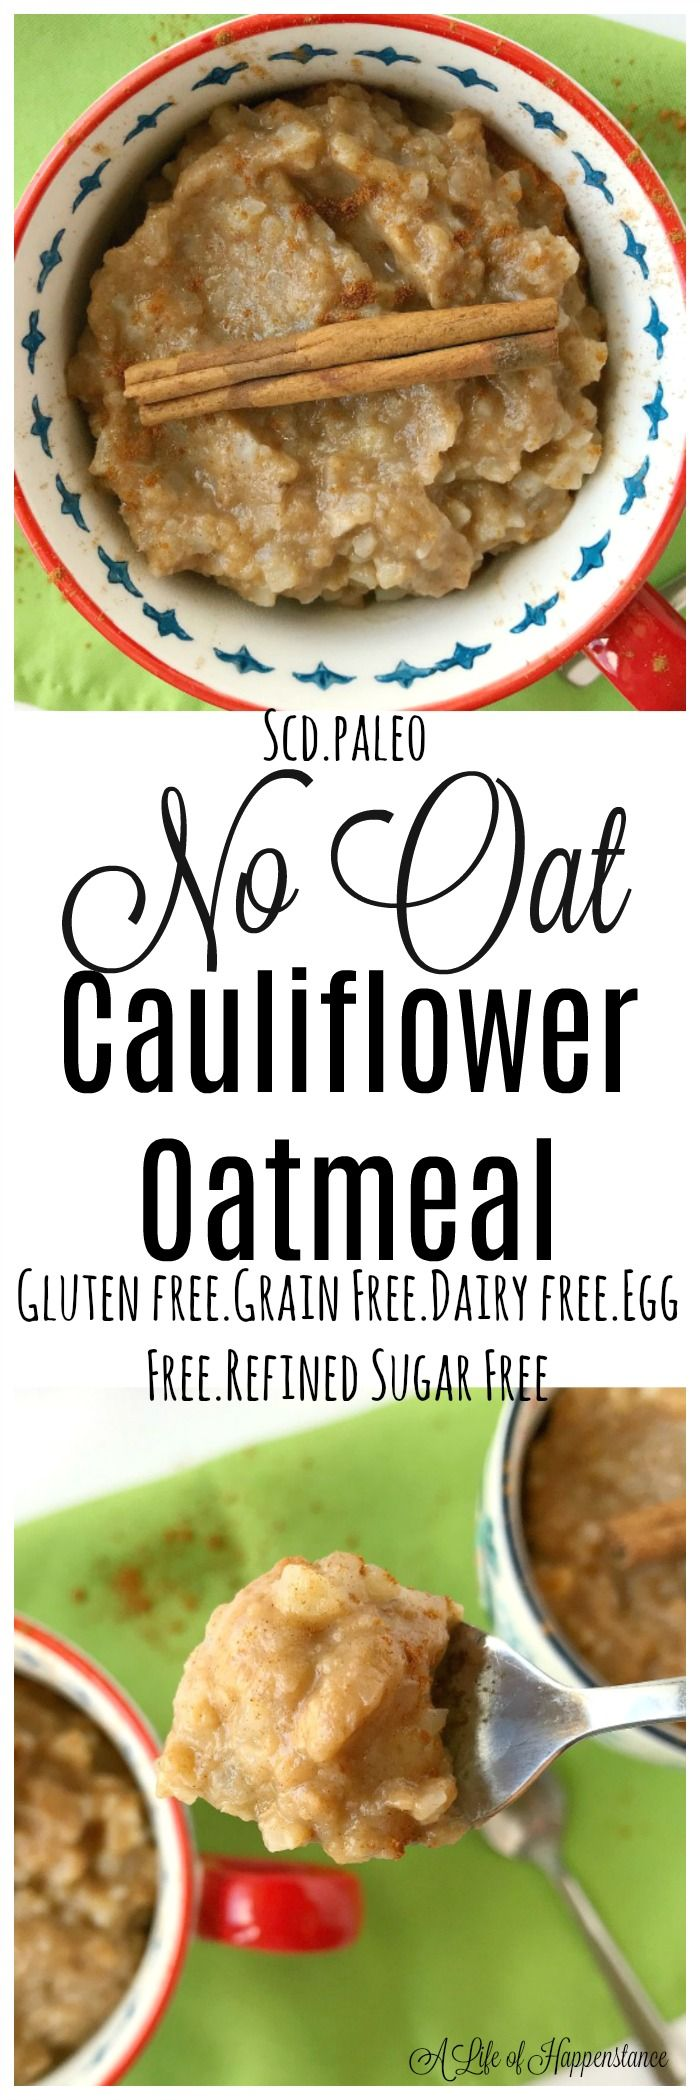 An easy and tasty bowl of oatmeal without the oats! Cauliflower is used instead of oats to recreate a classic breakfast comfort food that's healthy. This dish is gluten free, grain free, refined sugar free and egg free. It's SCD and Paleo.